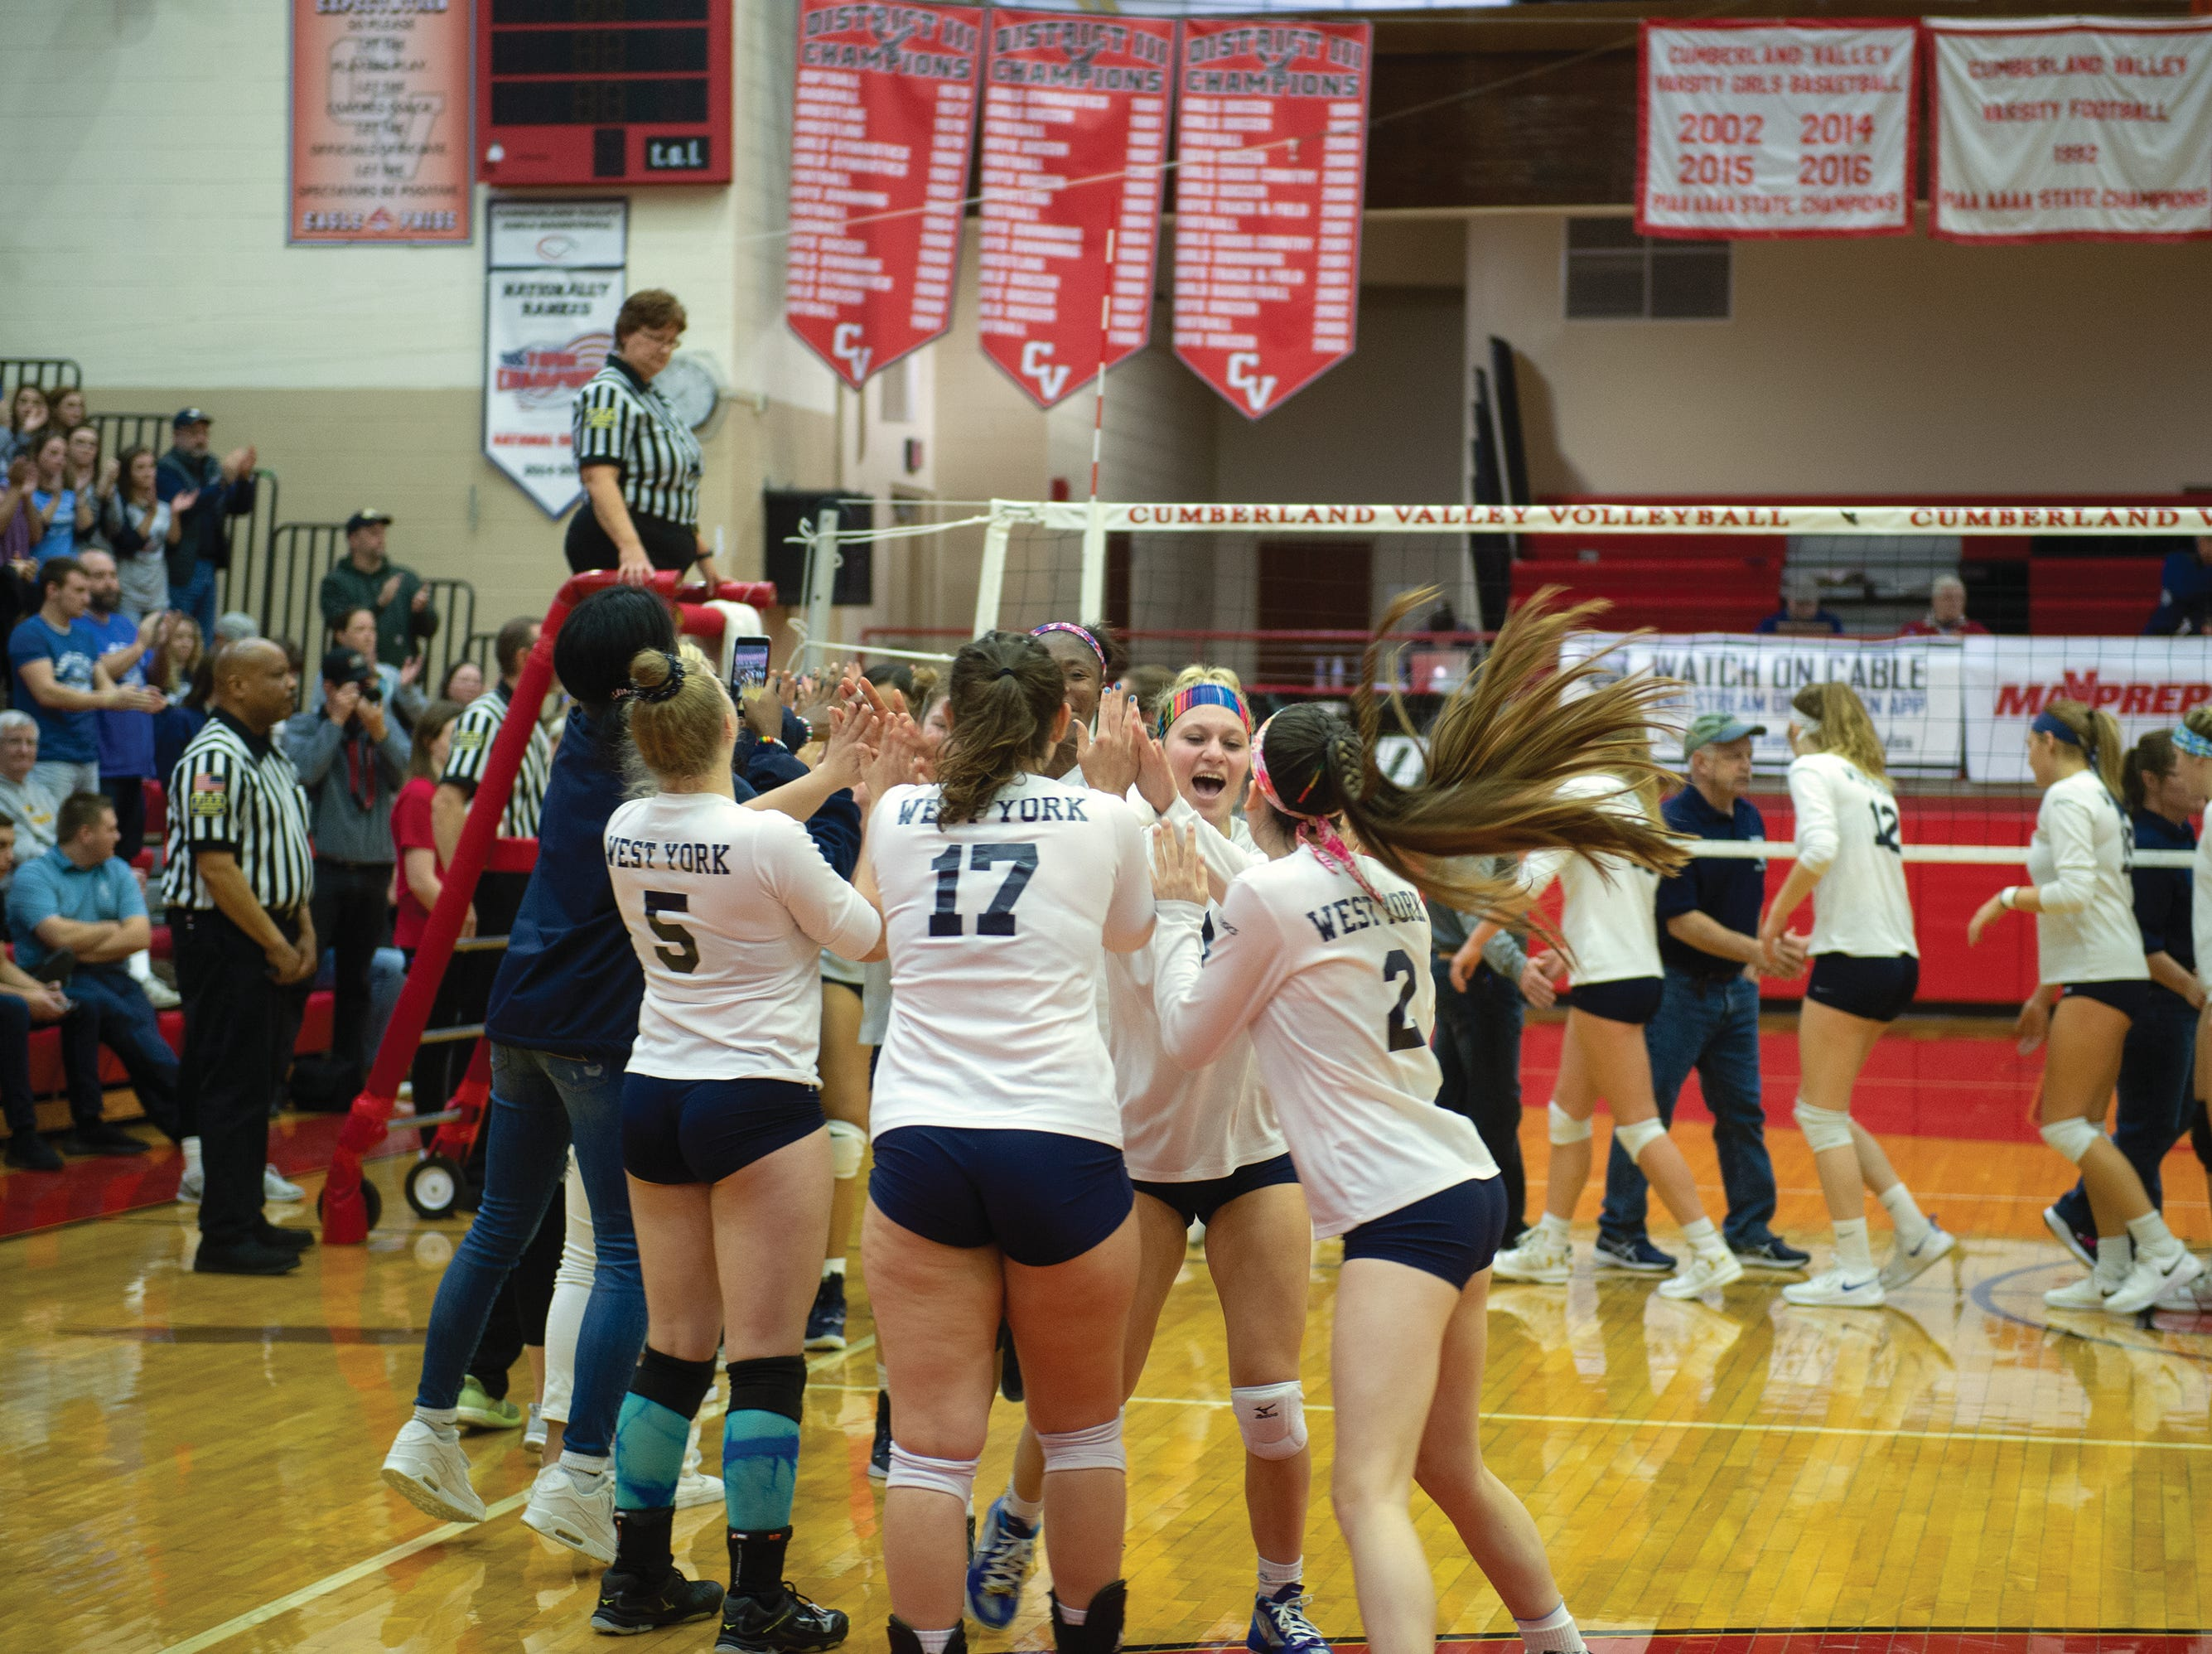 West York's celebration starts after the Bulldogs defeated Warren 3-0 to win the PIAA Class 3A girls' volleyball championship.